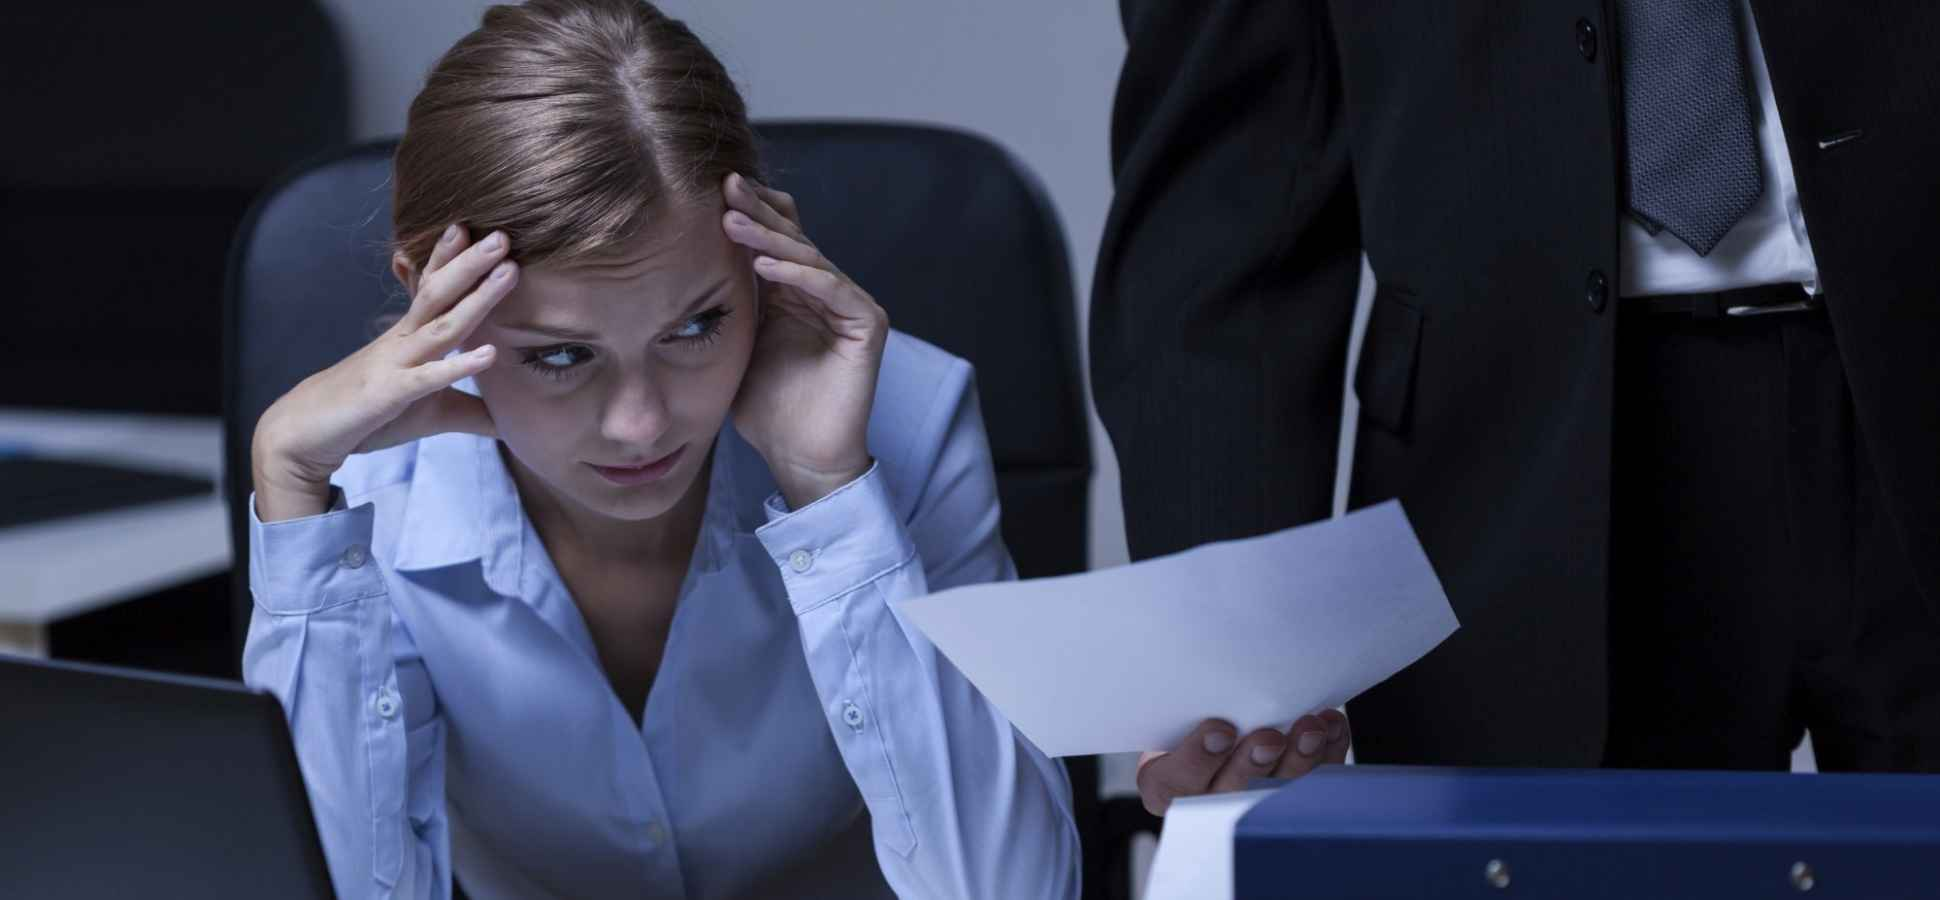 Want to Be Successful and Happy? Don't Make These 5 Deadly Career Mistakes